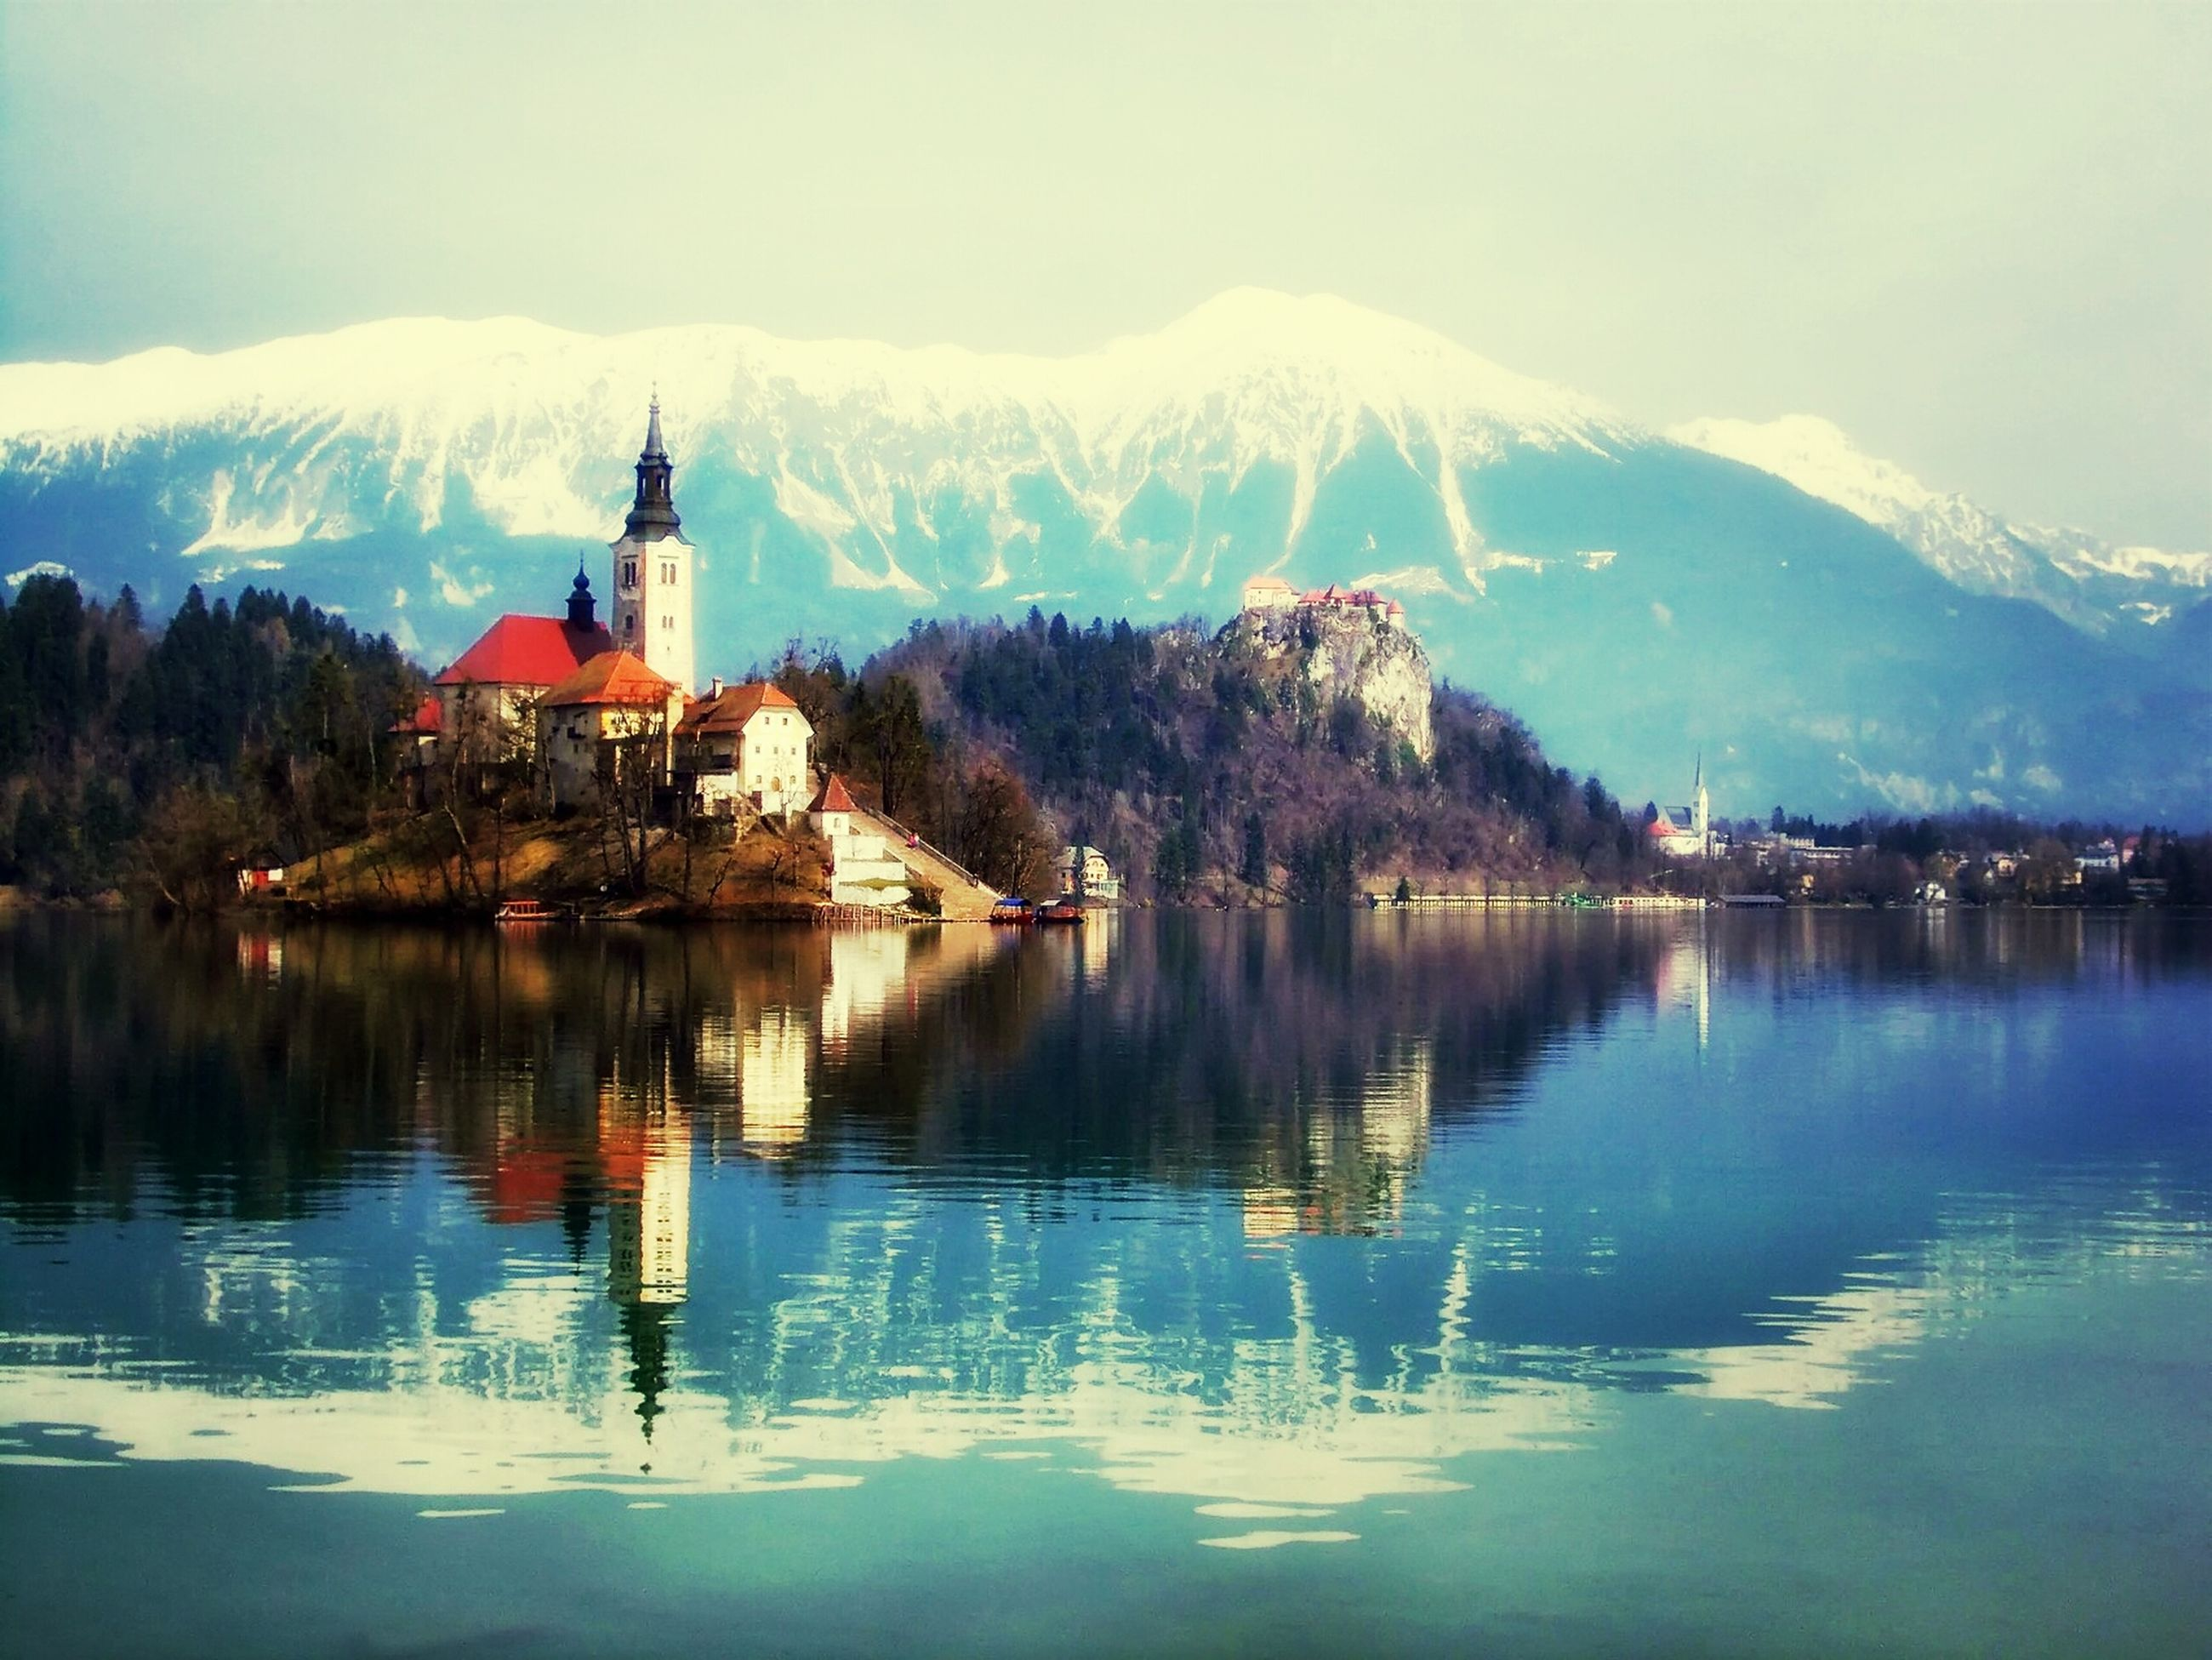 mountain, building exterior, architecture, built structure, mountain range, water, lake, reflection, winter, snow, cold temperature, waterfront, house, scenics, tranquil scene, season, tranquility, beauty in nature, nature, sky